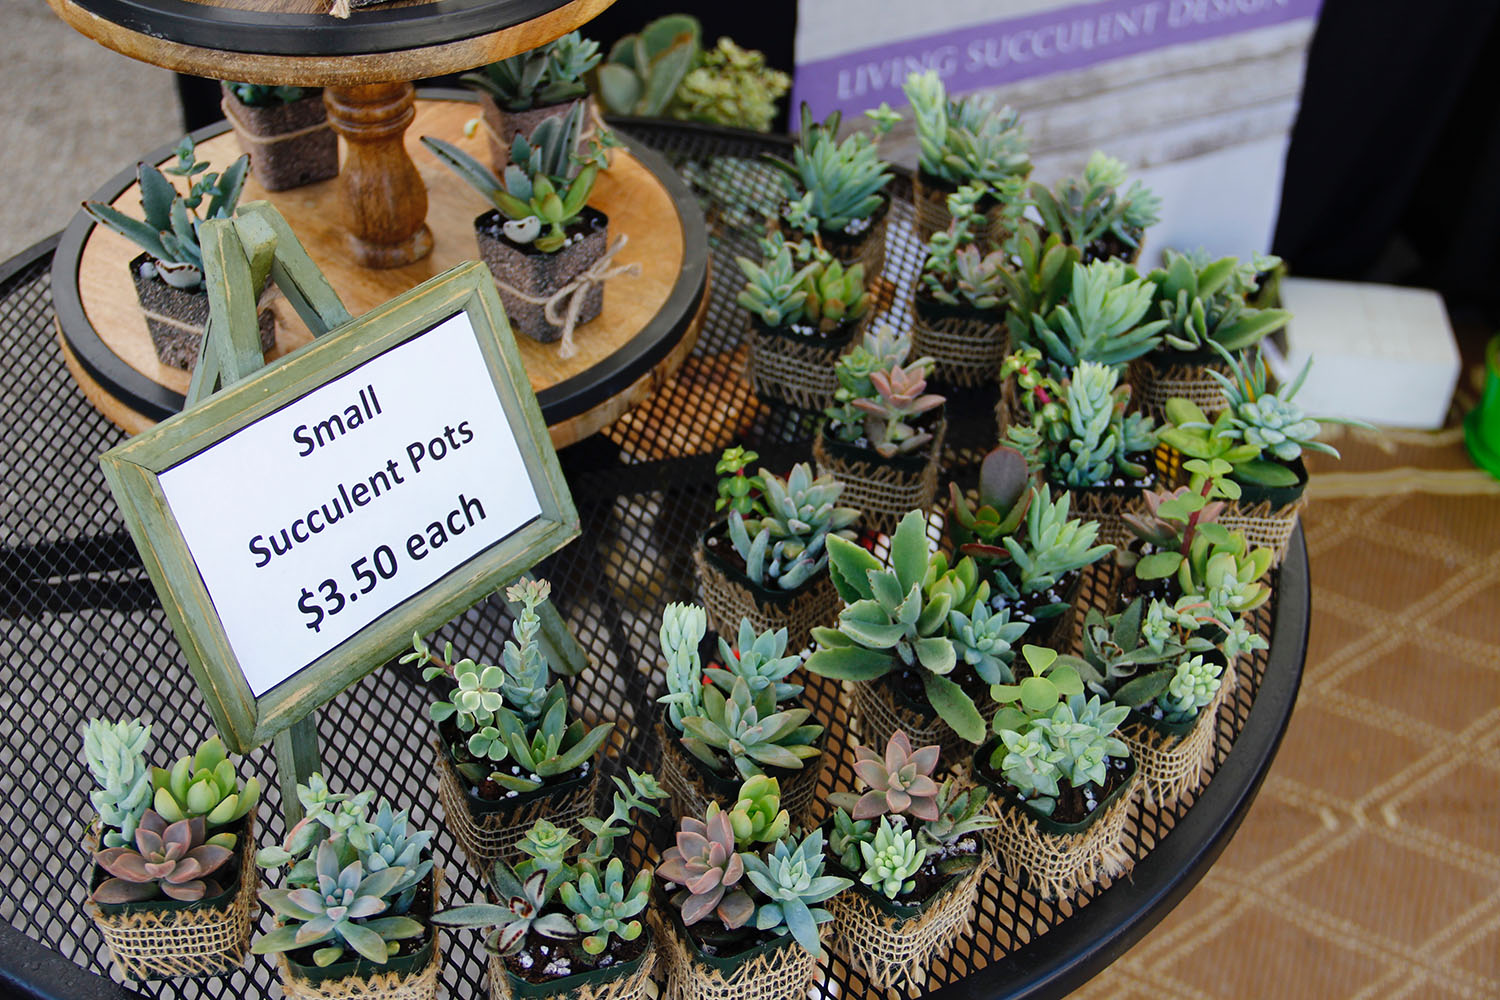 Dee Mullen's small succulents are displayed at her booth. (Lauren Gandy/WUFT News)